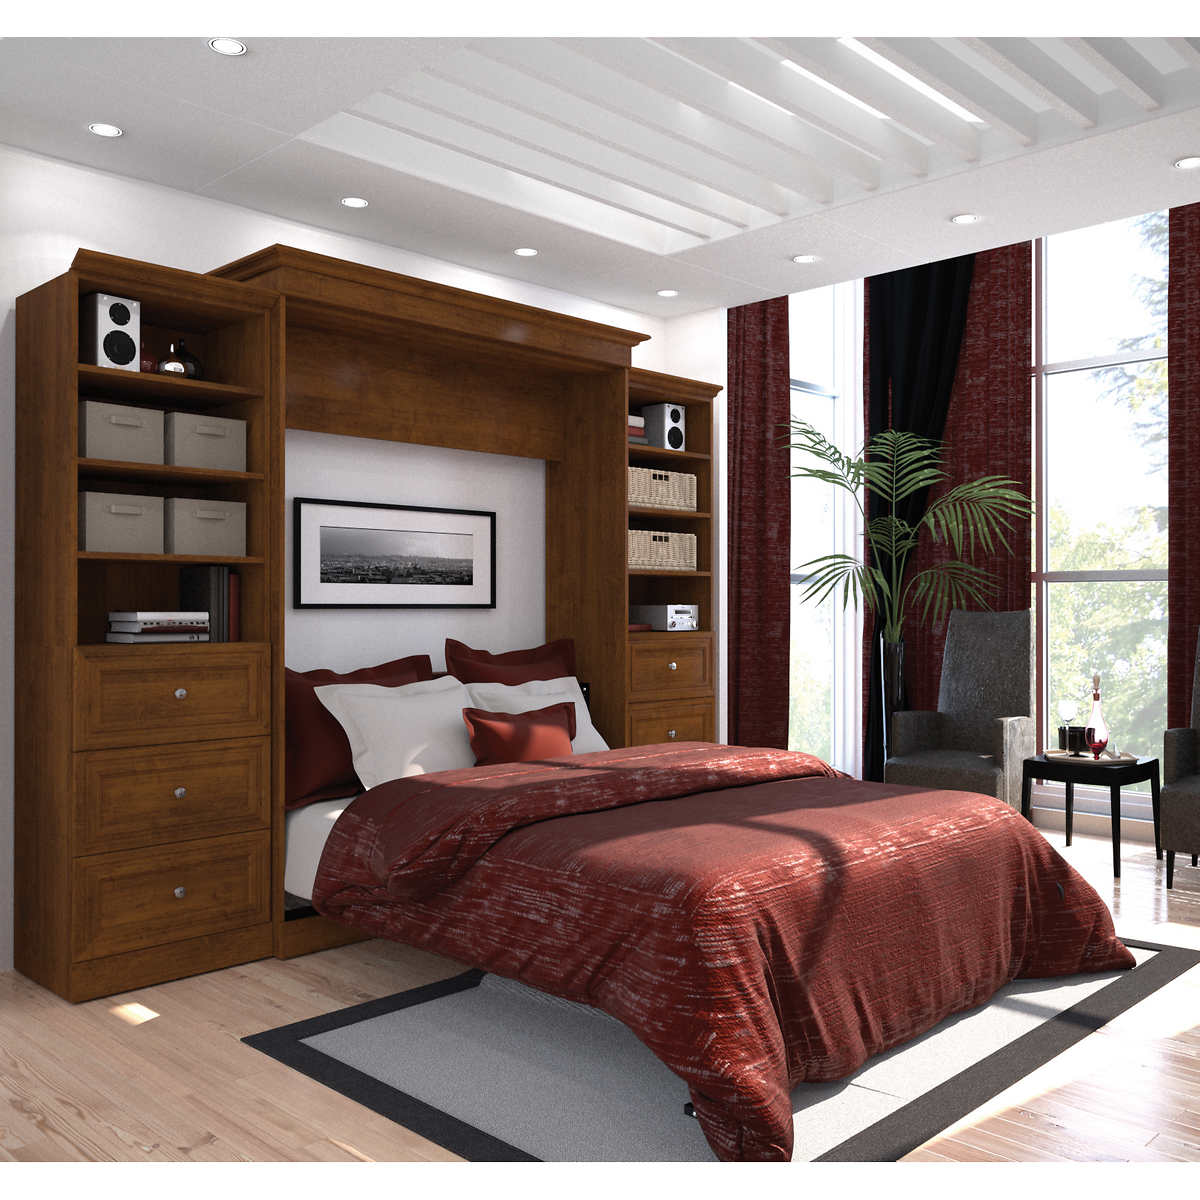 Bestar audrea queen wall bed with two 25 storage units and bestar audrea queen wall bed with two 25 storage units and drawers in tuscany amipublicfo Choice Image